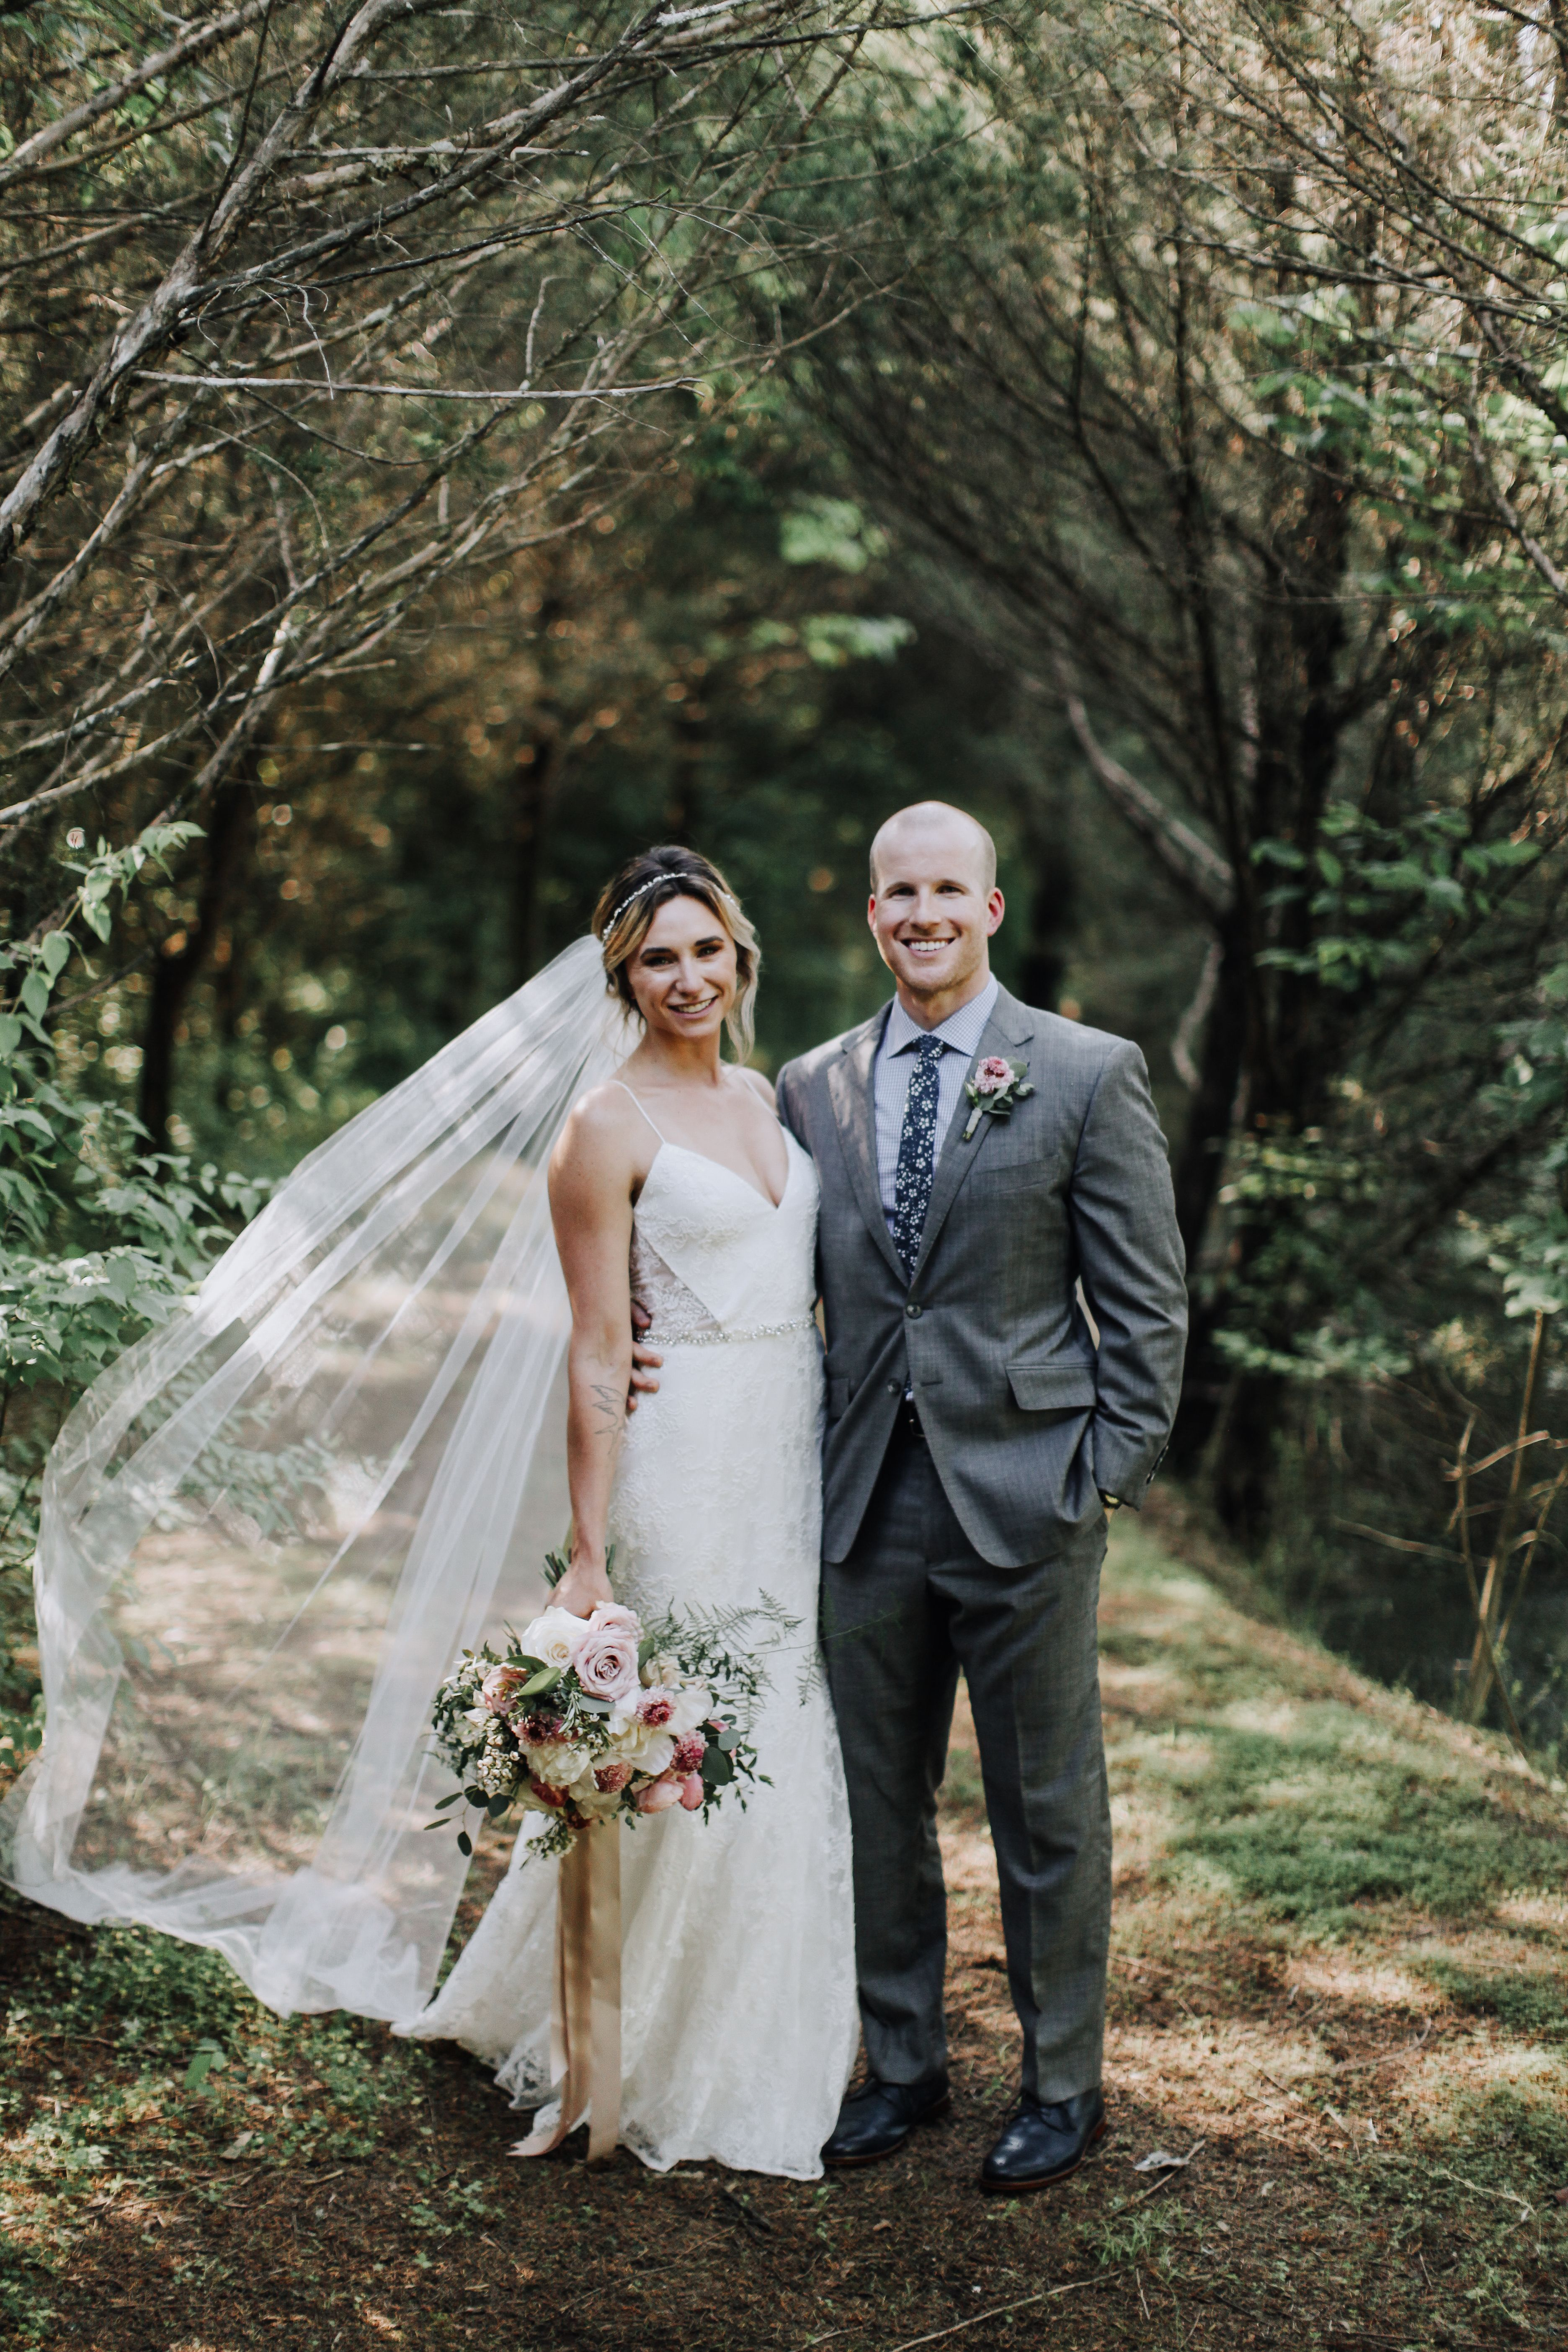 Nature wedding dress  Our amazing nature preserve is the perfect place for a happy Bride